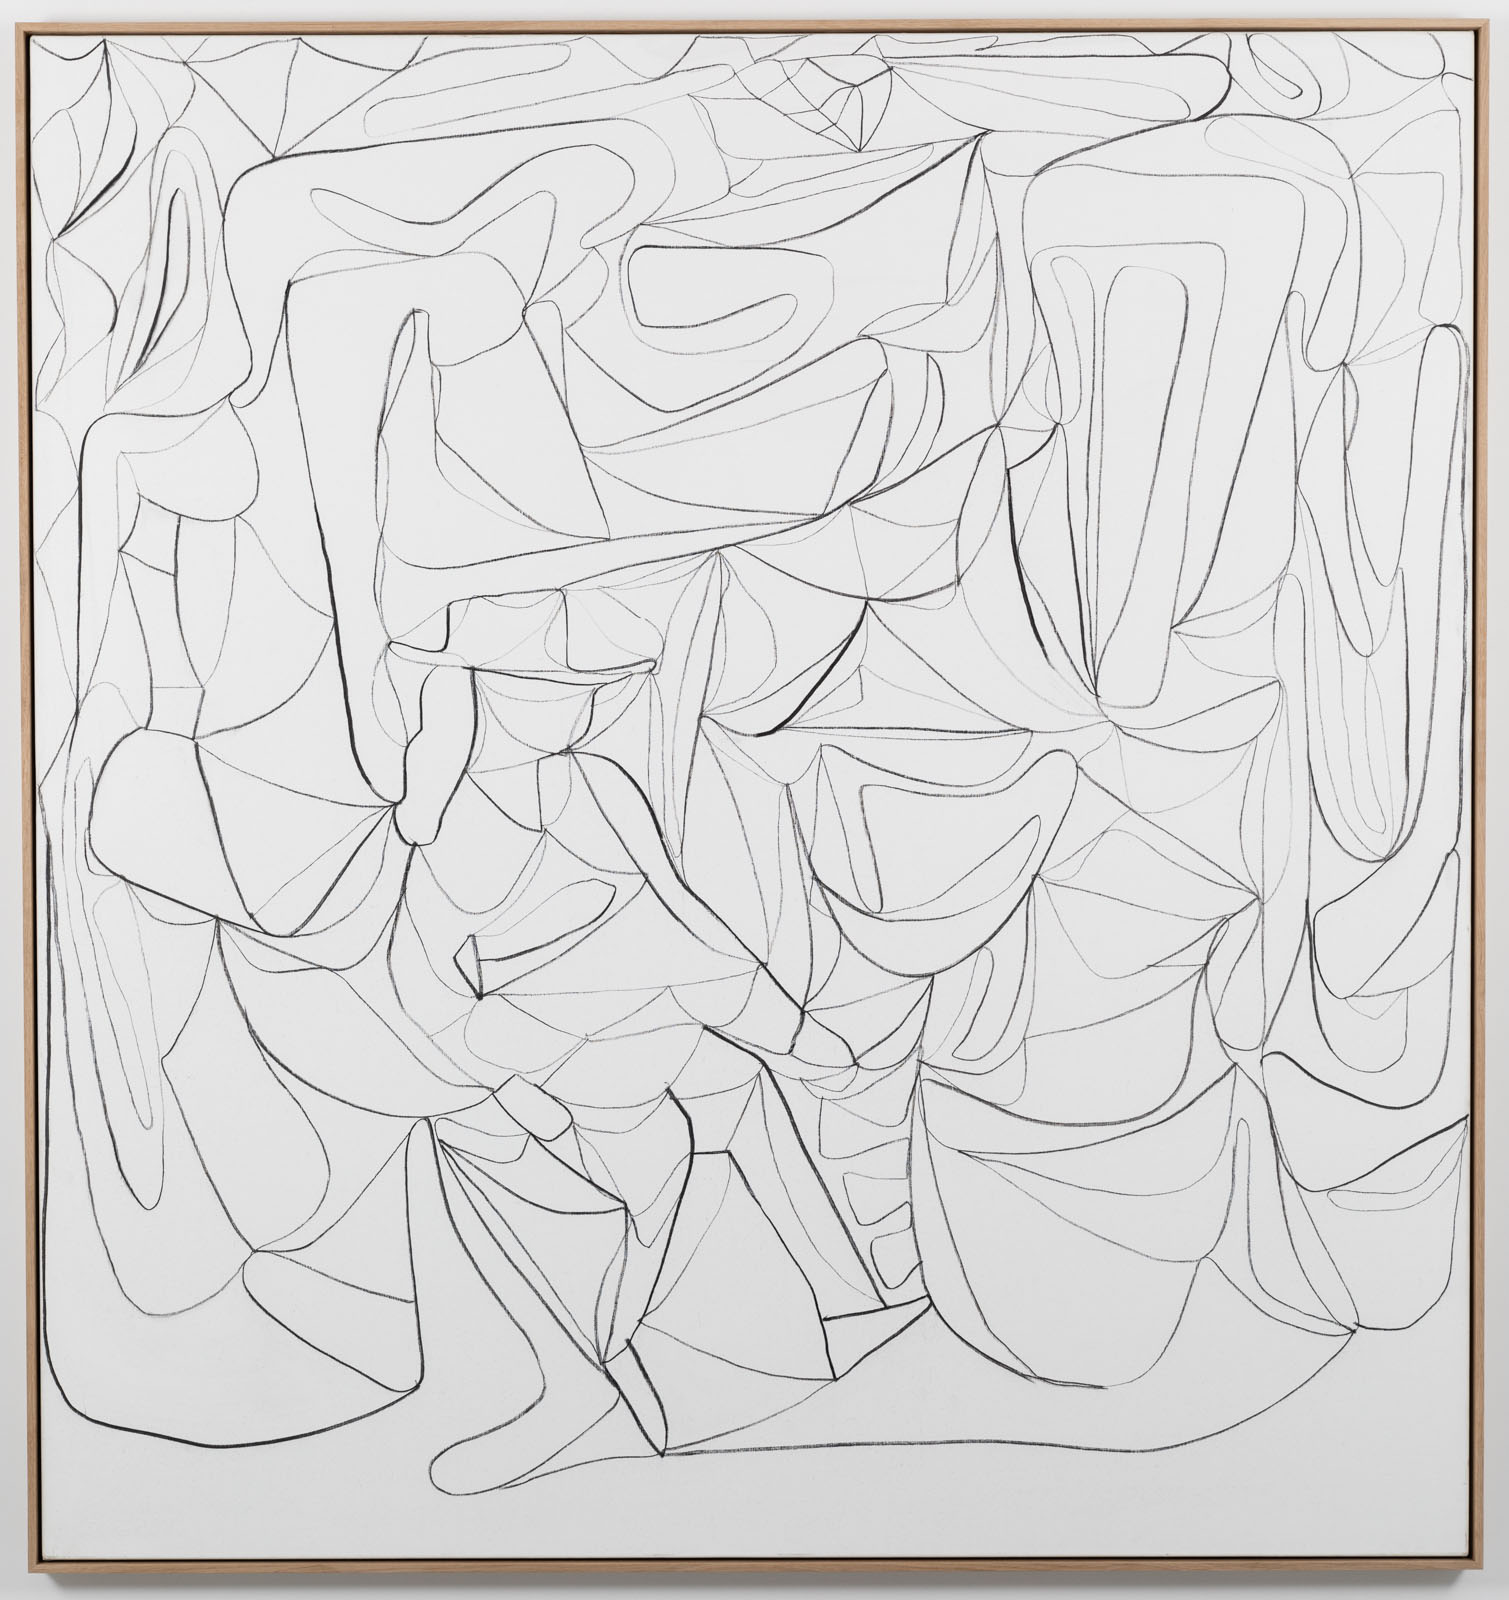 The Inventarium Drawing No. 02, 2018. Charcoal on canvas, 190 x 170 cm